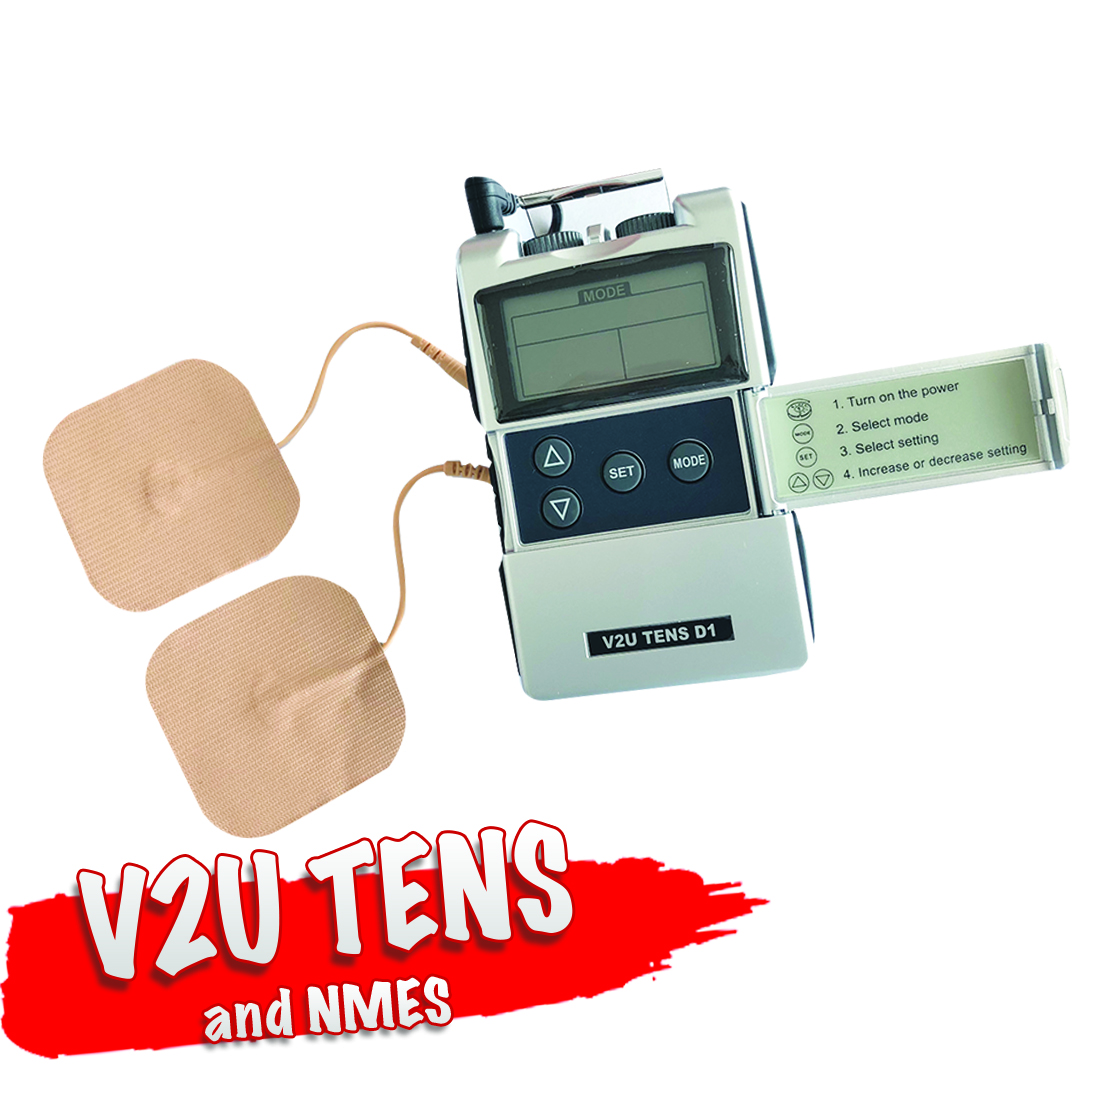 V2U Tens - Fitness Equipment